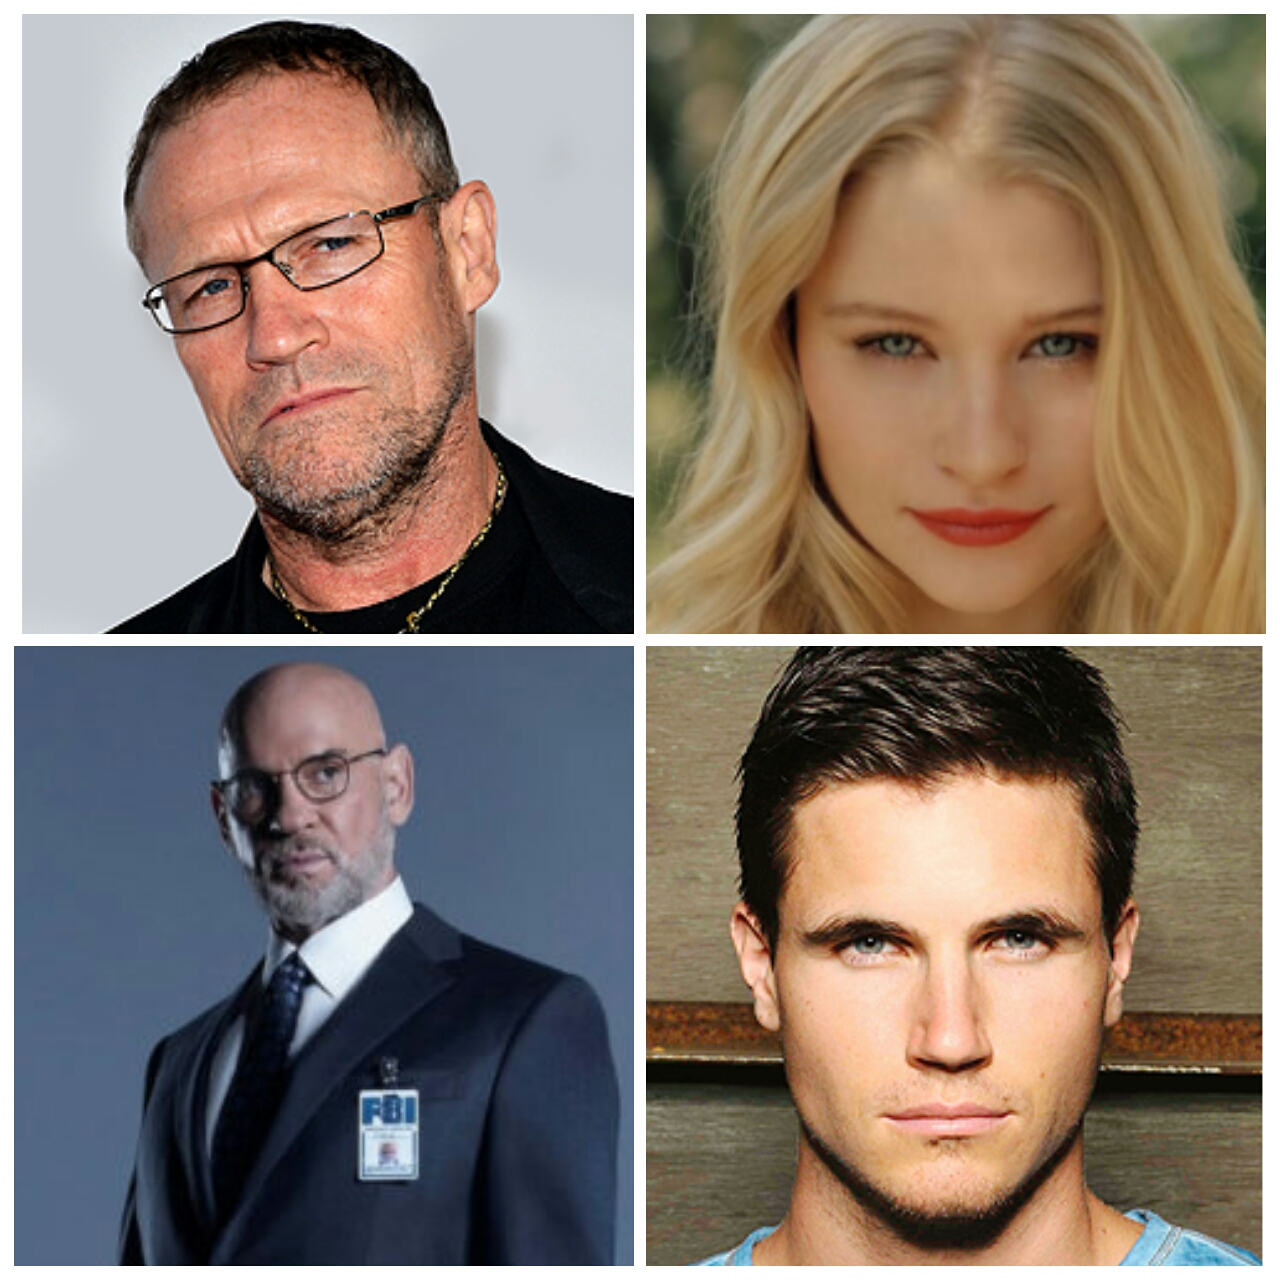 heroes & Villains Fan Fest HVFF Guardians of the Galaxy Michael Rooker Once Upon a Time Emilie de Ravin X-Files Mitch Pileggi The Flash Robbie Amell